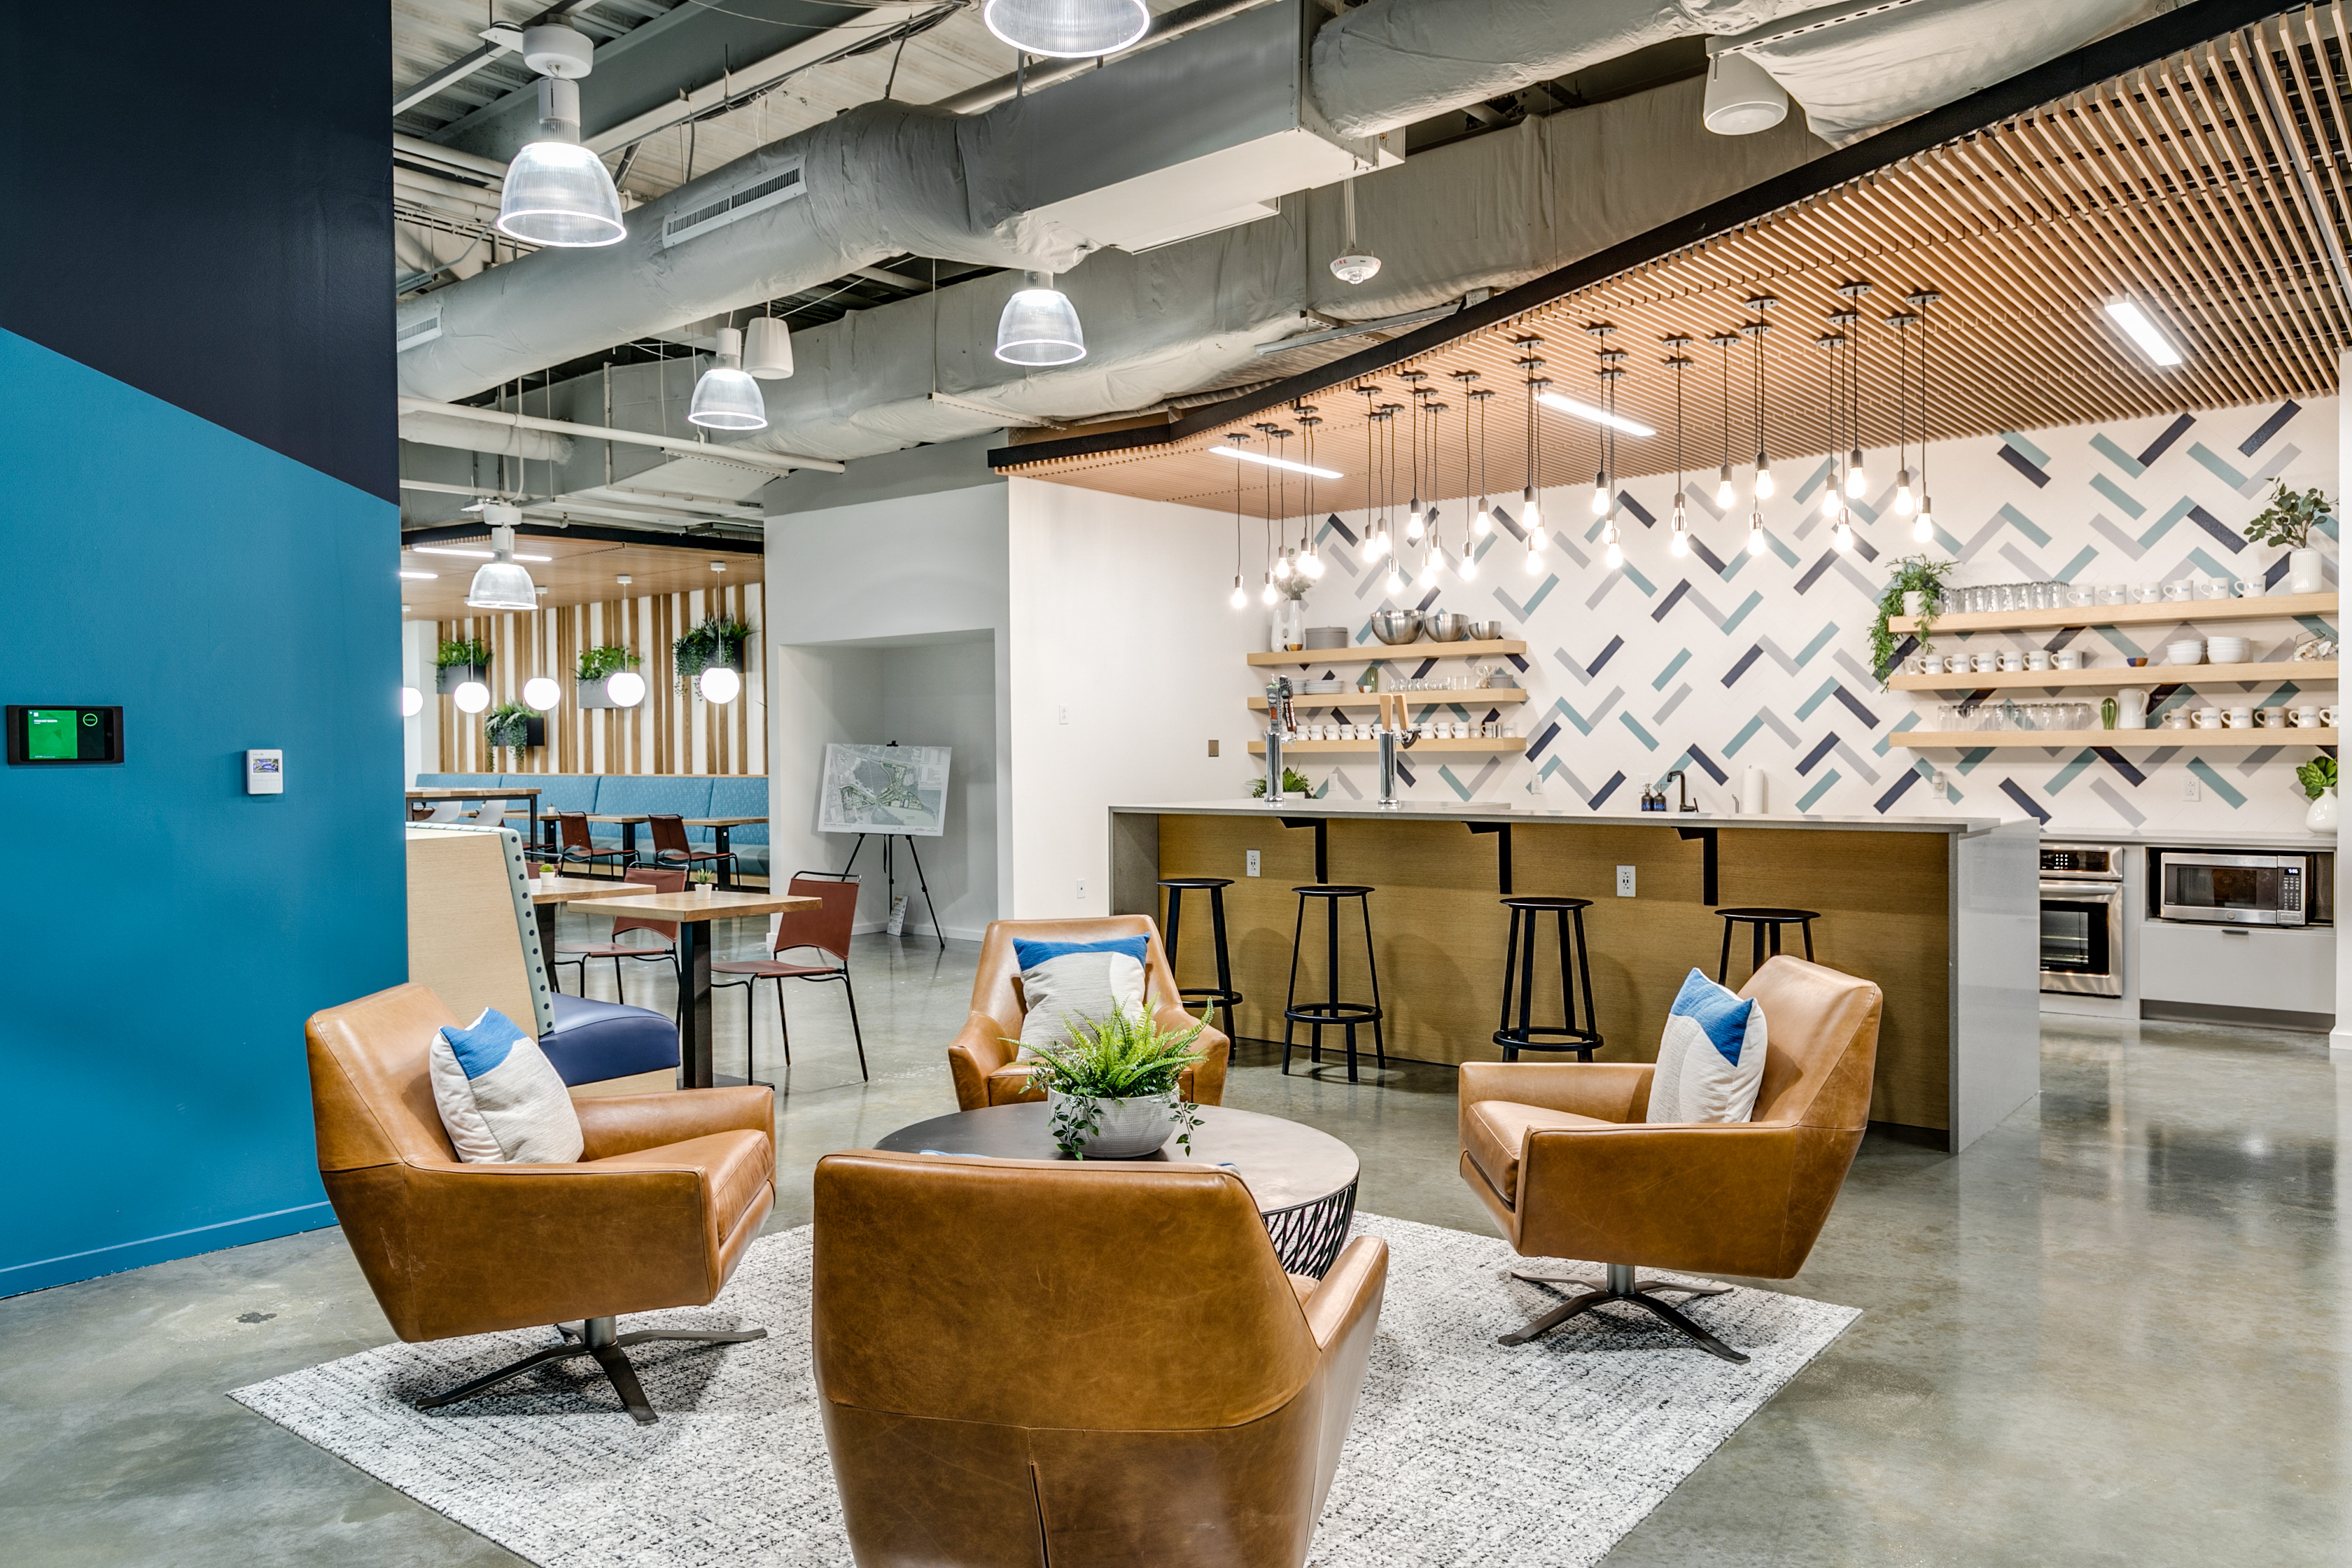 Gather Newport News Coworking and Shared Office Space